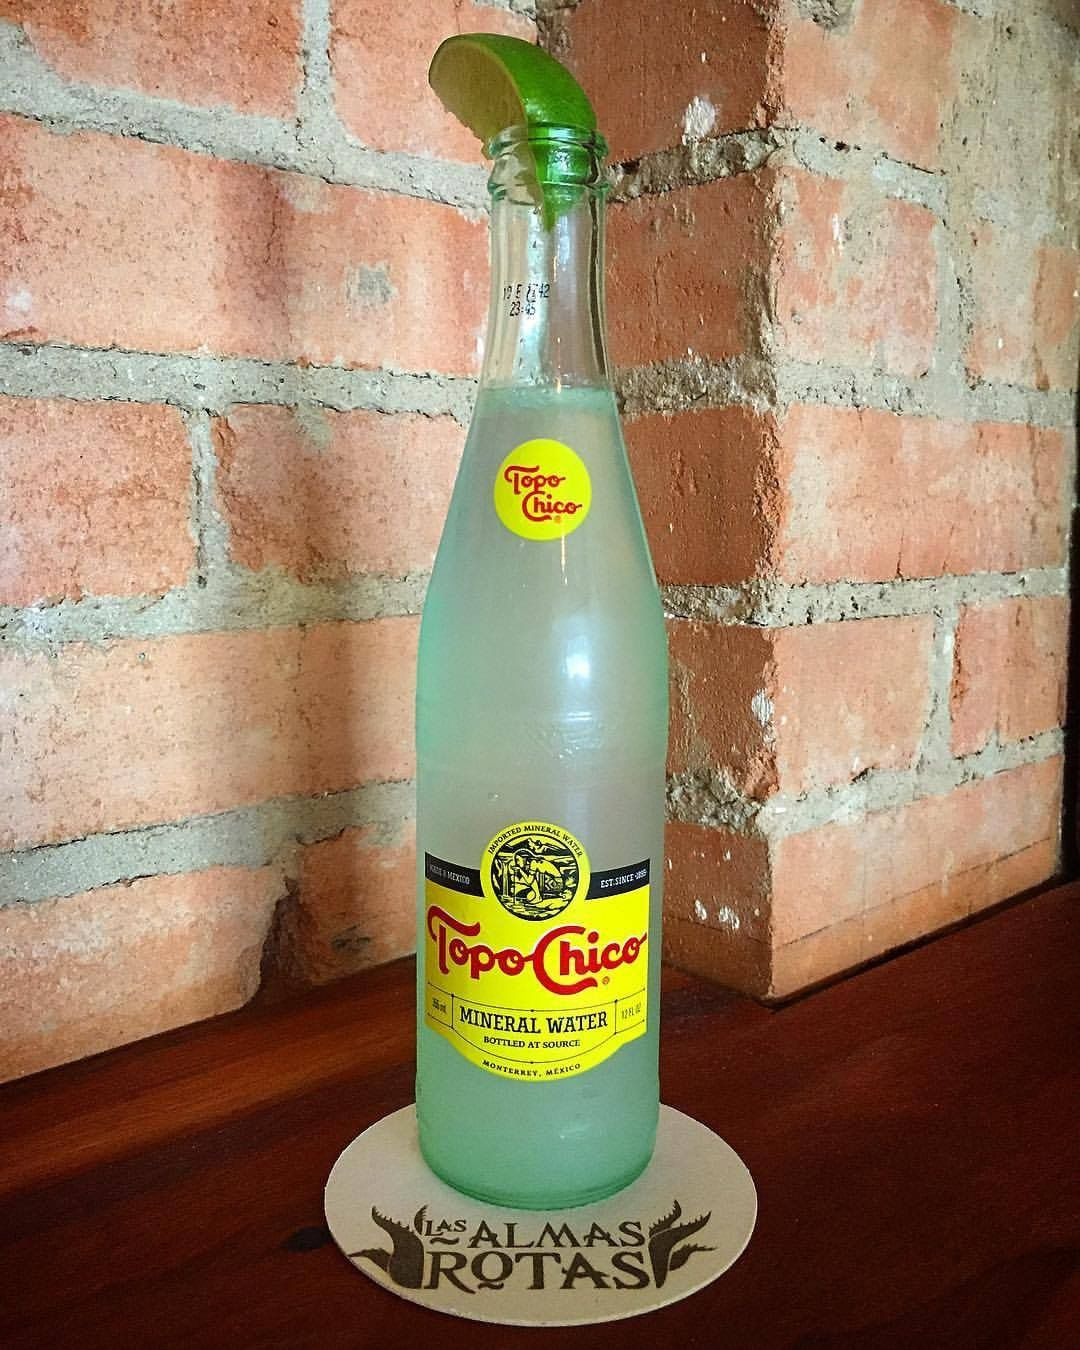 A Ranch Water cocktail served in a Topo Chico bottle